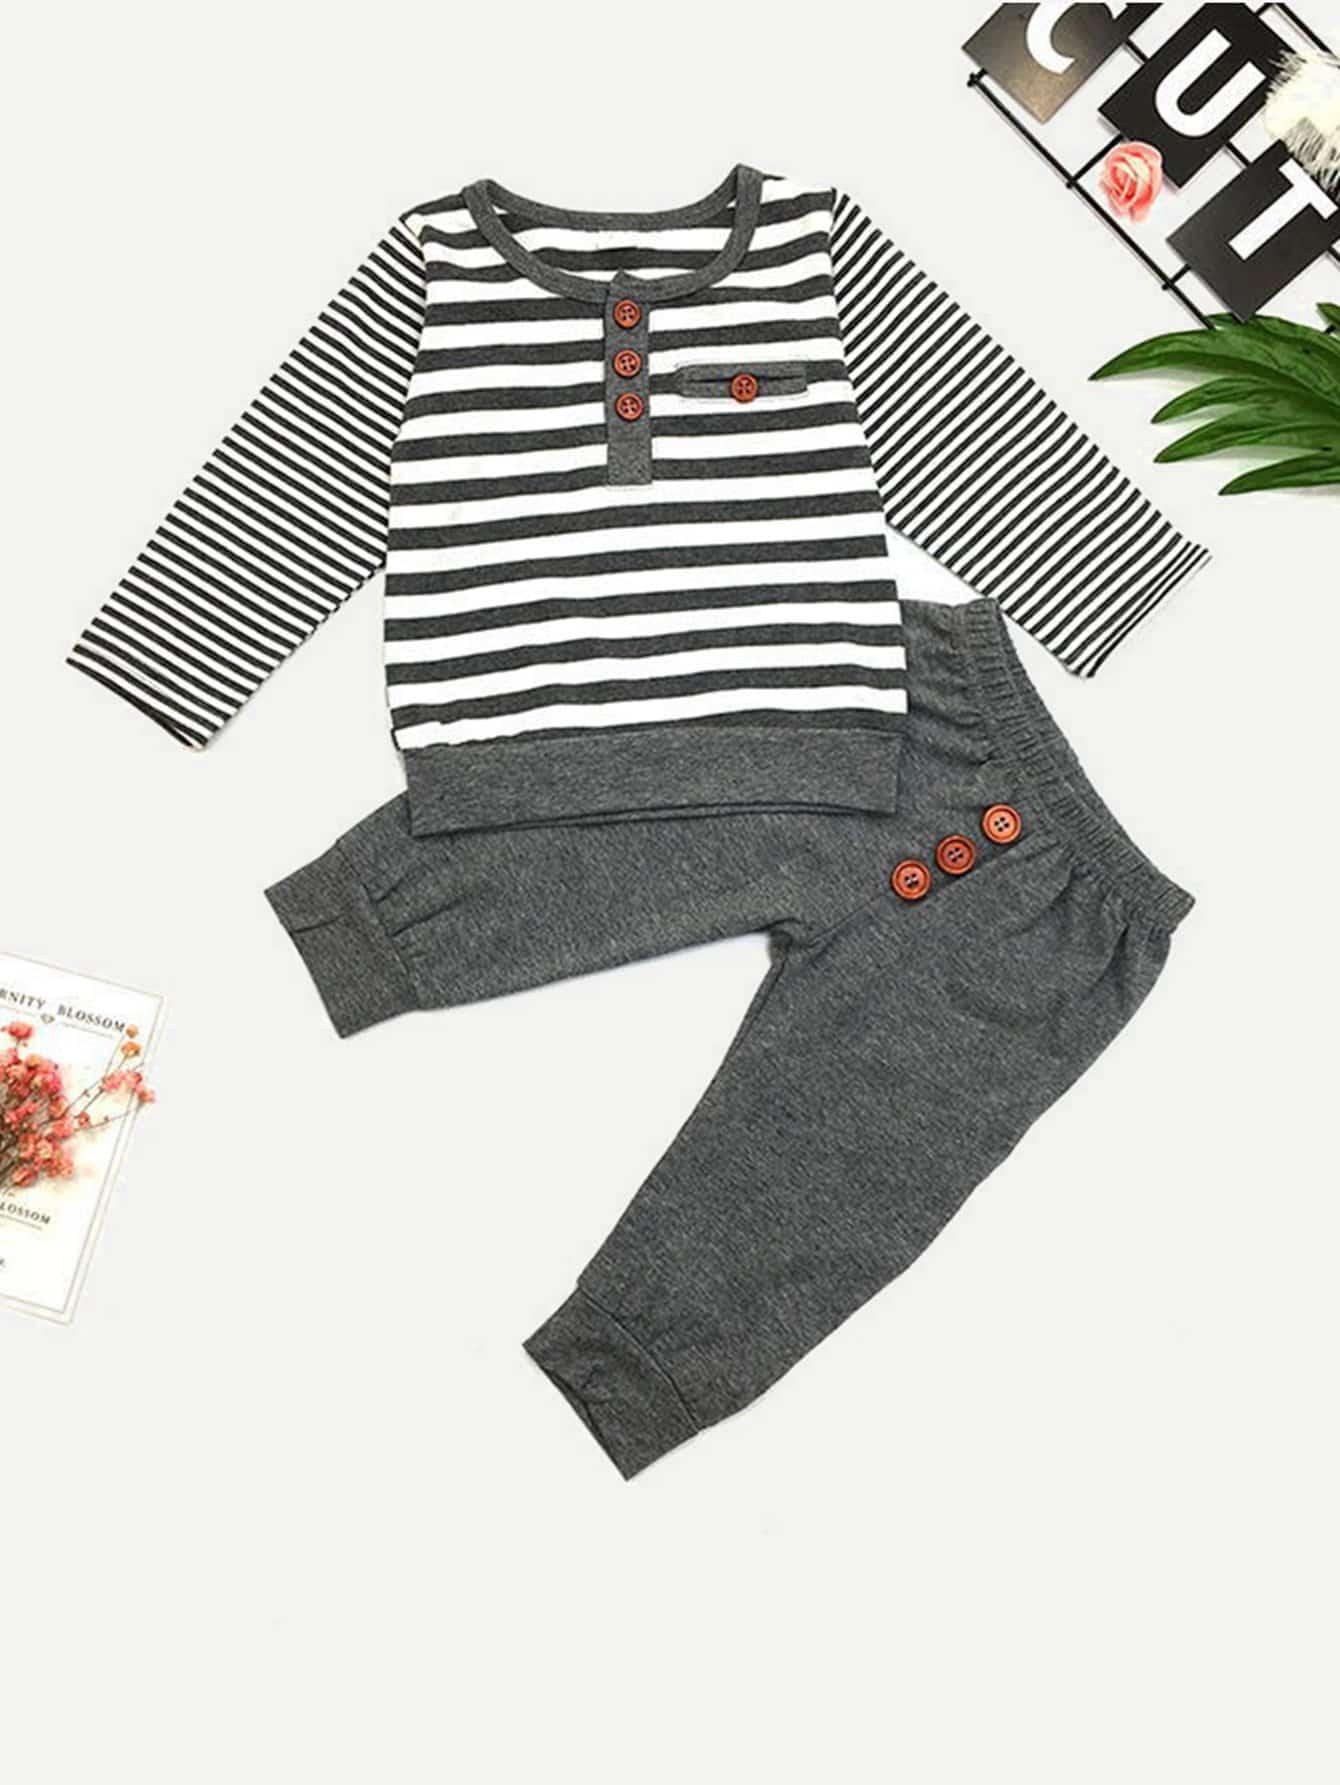 Boys Striped Top With Pants